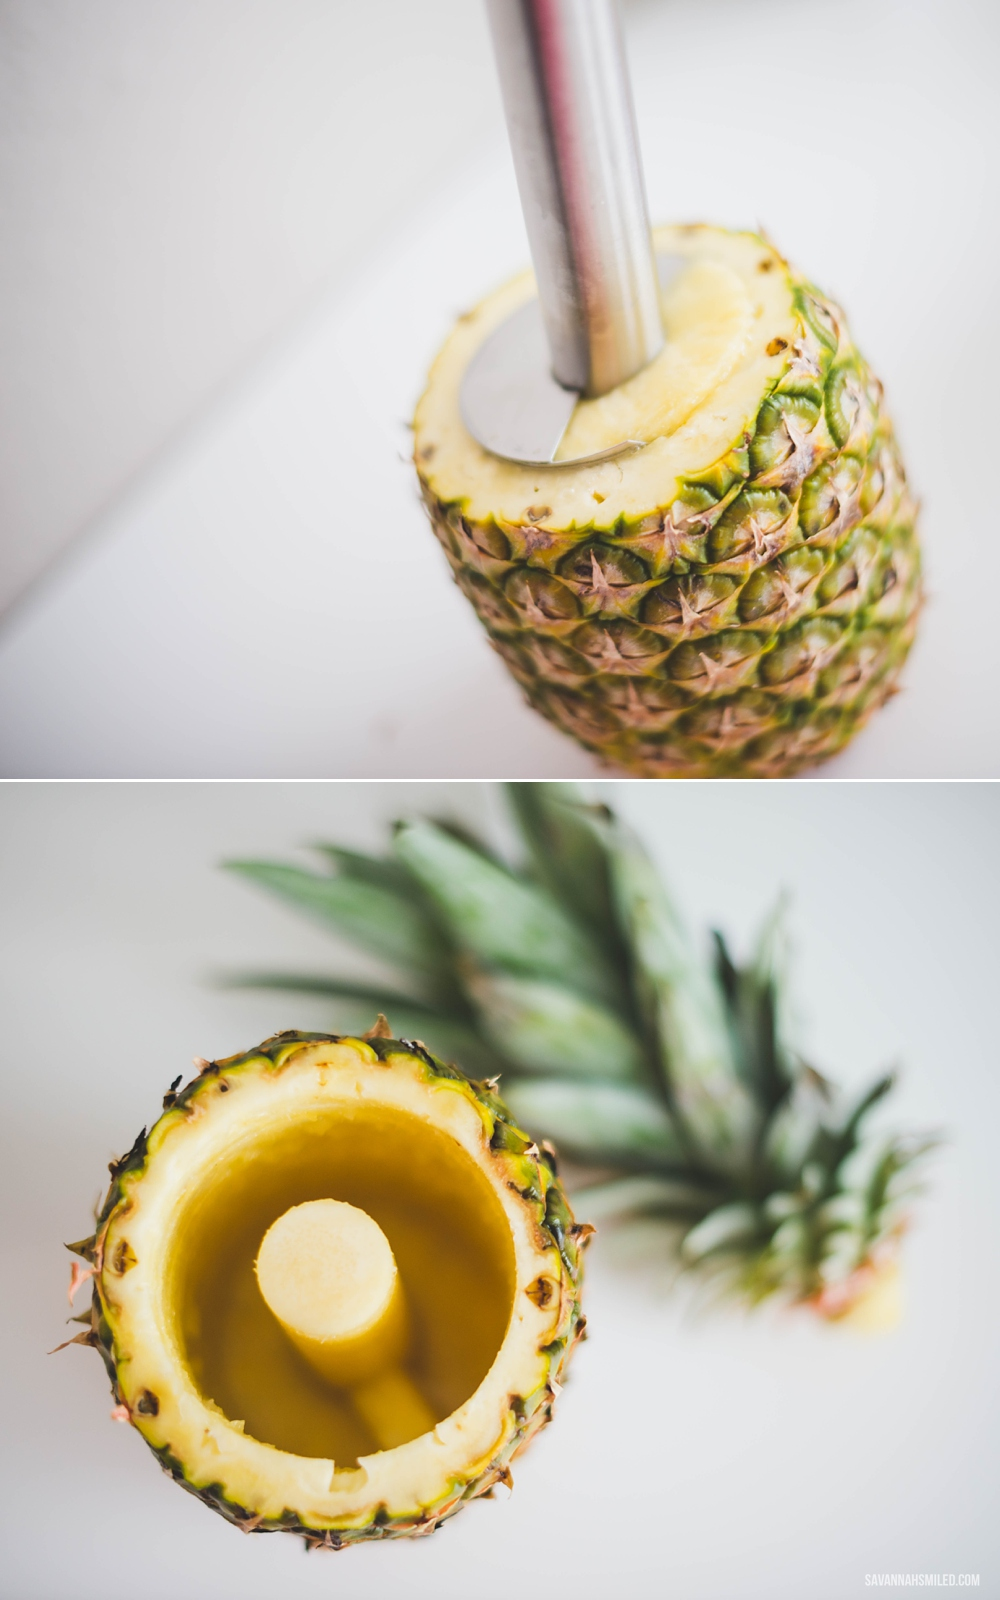 pinapple-slicer-amazon-8.jpg